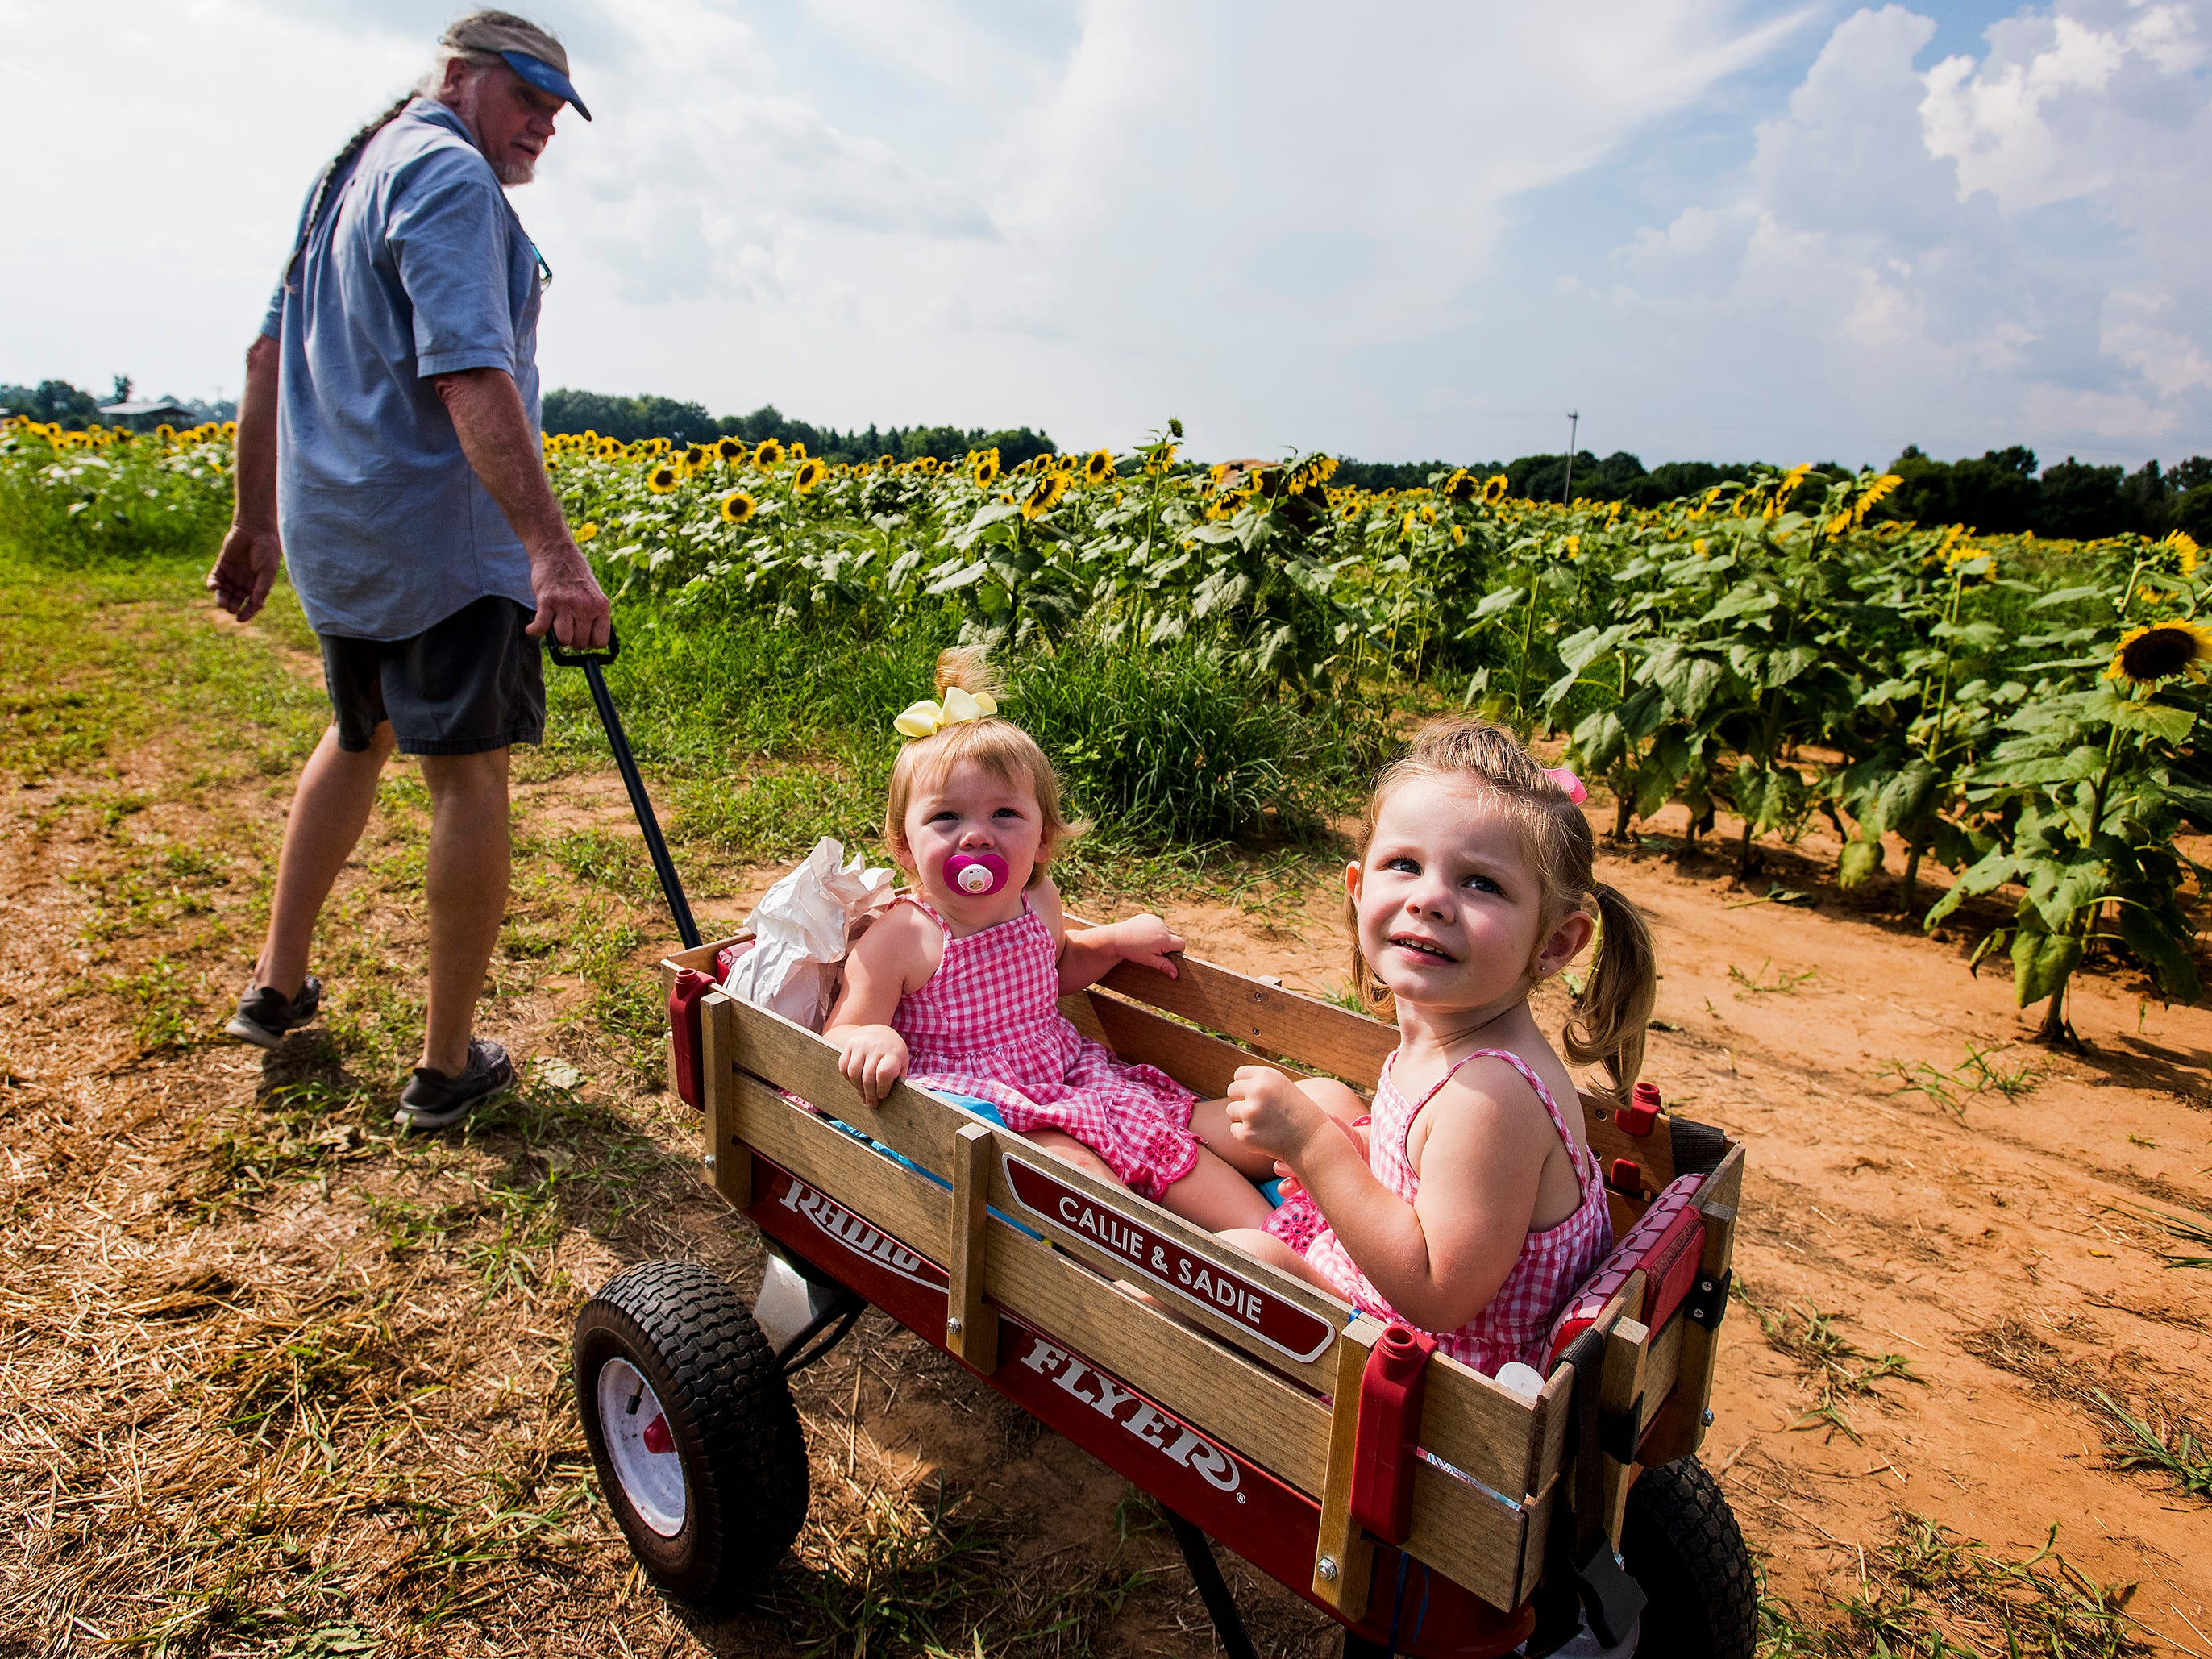 Mike Young pulls his granddaughters Sadie Young and Callie Young in the Sheridan family sunflower field about five miles west of Autaugaville, Ala. on Monday August 13, 2018.